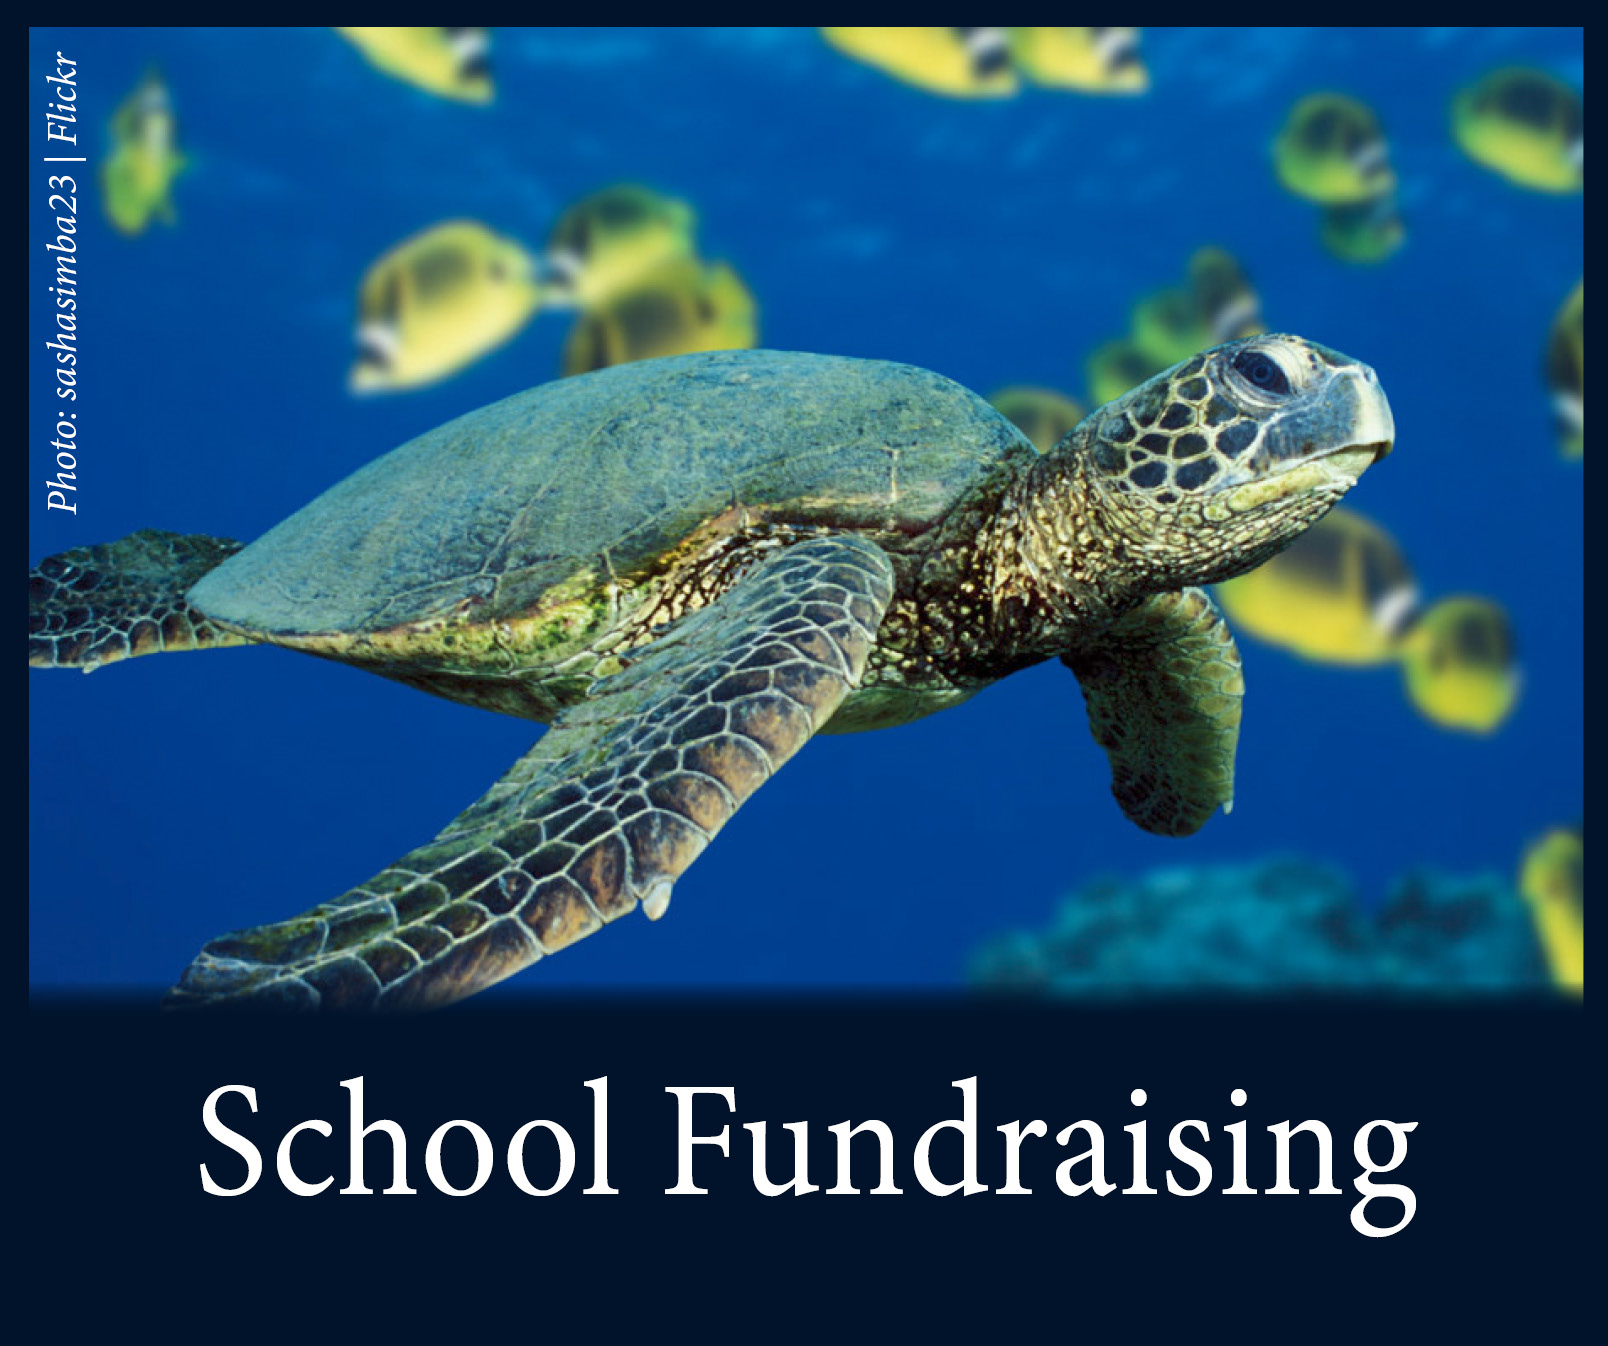 School Fundraising Button.jpg